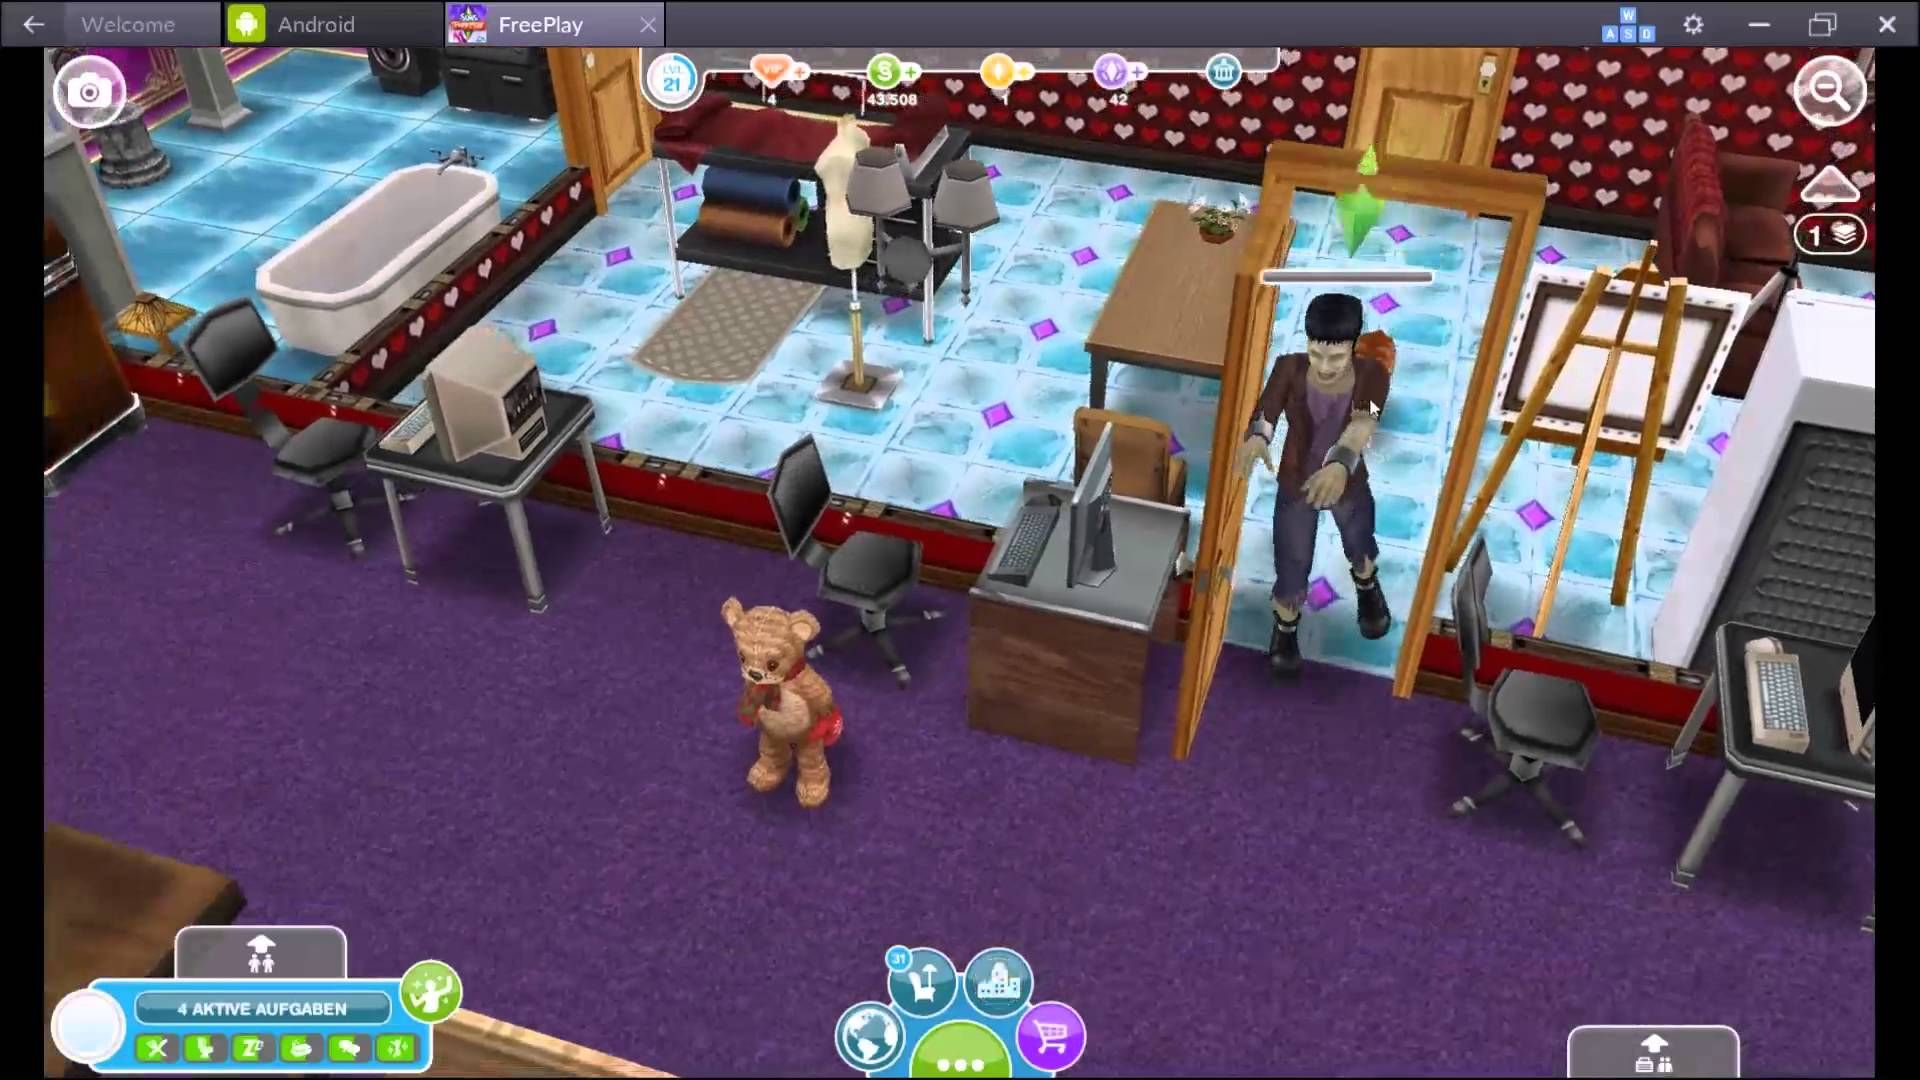 The Styles Of Timedie Stile Der Zeit Lets Play Sims Freeplay 60